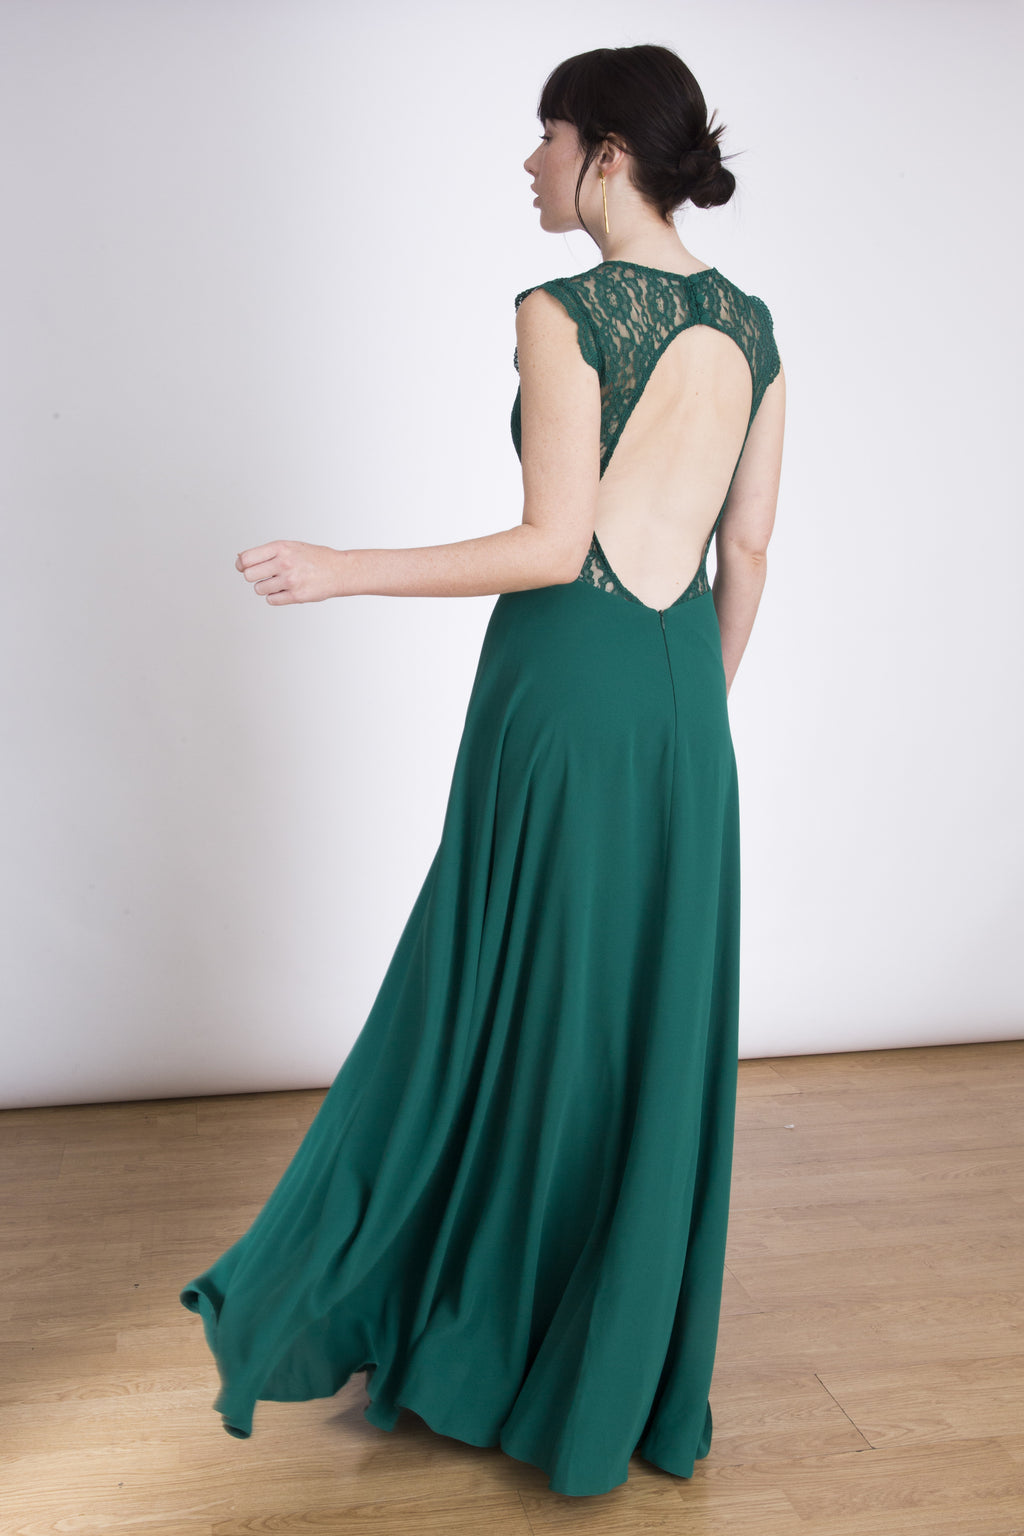 Lauren Lynn London Dress, Open back Lace Maxi dress, Top lace maxi dress, green lace maxi dress,  Lace top maxi dress with open back, wedding guest dress, maxi vestido, vestido largo para bodas, invitada perfecta, vestido largo de encaje para invitadas boda, maxi vestido de encaje, vestidos para ocasiones especiales